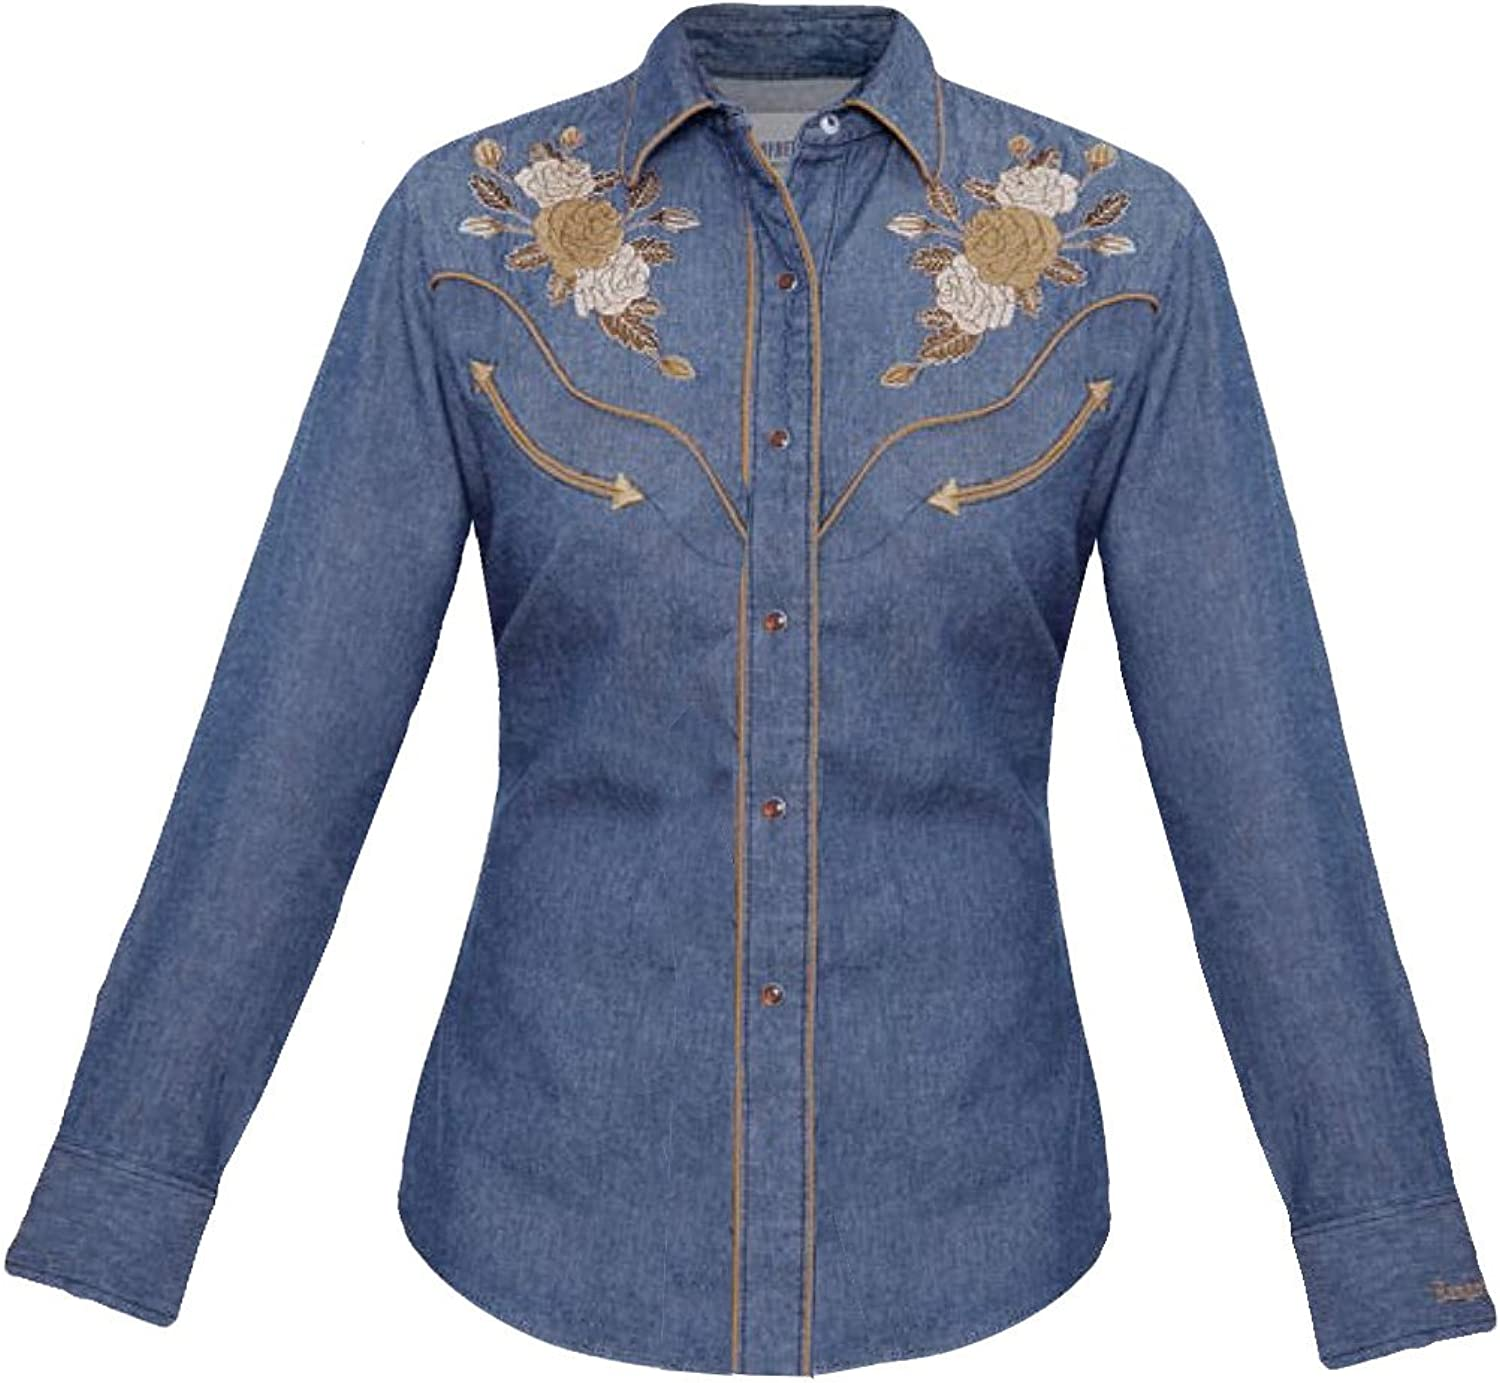 Modestone Women's Embroidered Long Sleeved Fitted Western Shirt Floral Denim bluee